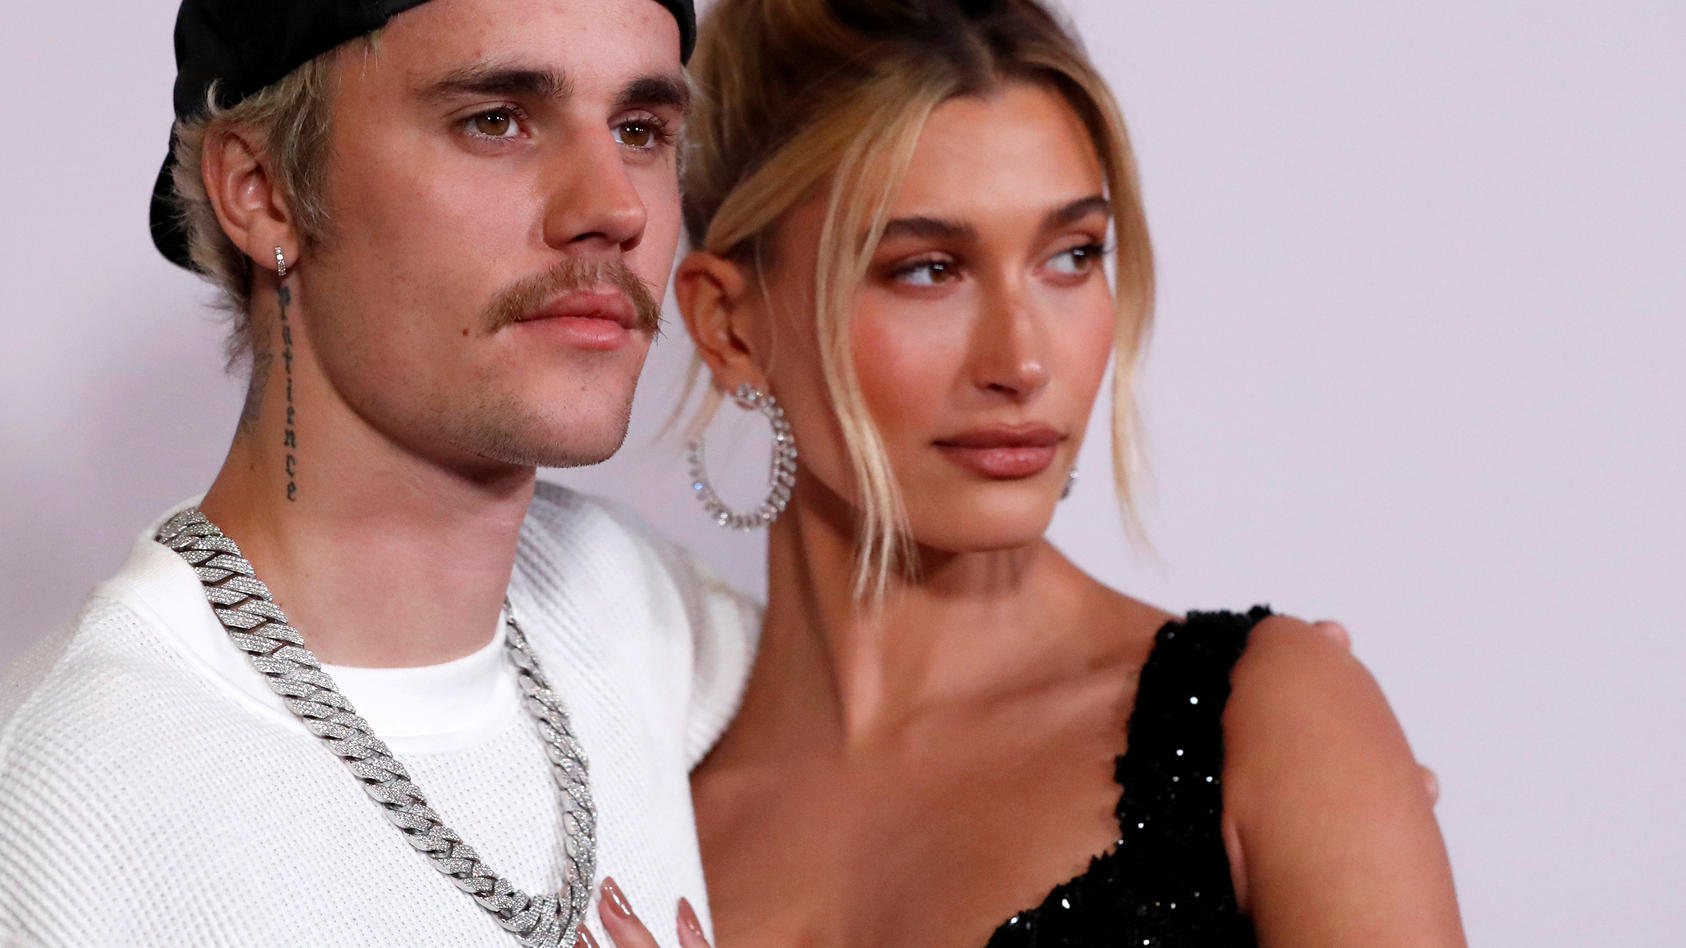 Justin und Hailey Bieber heirateten 2018